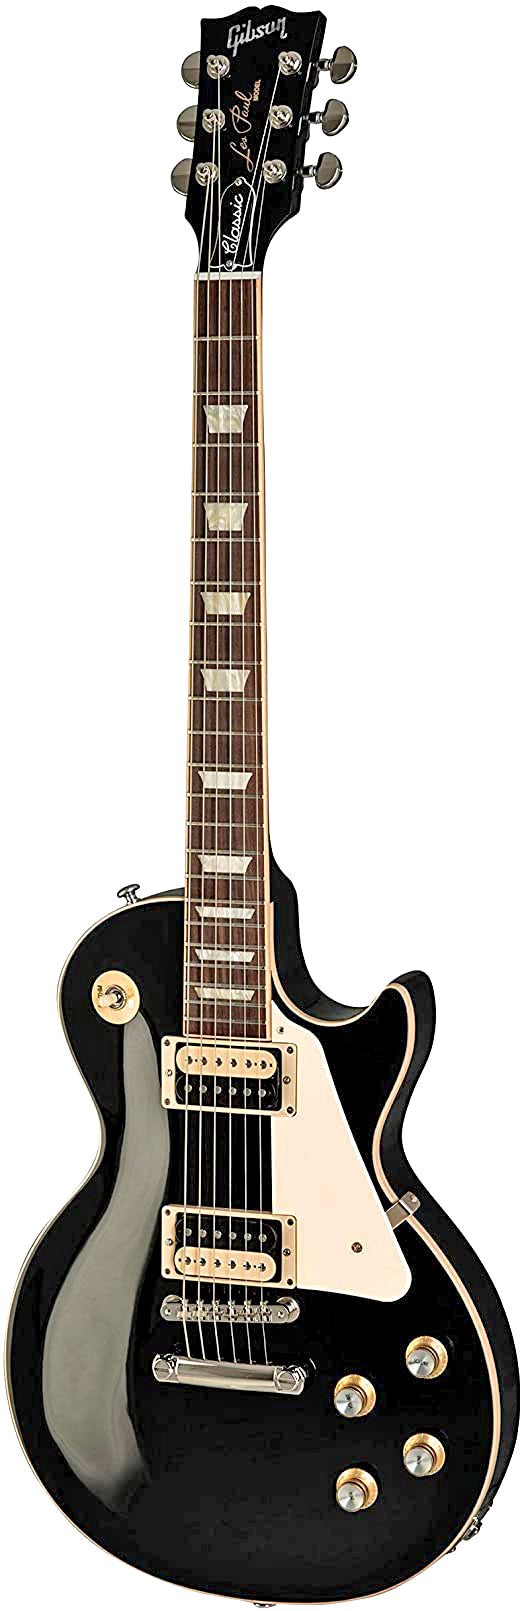 Gibson Les Paul Classic Electric Guitar Ebony